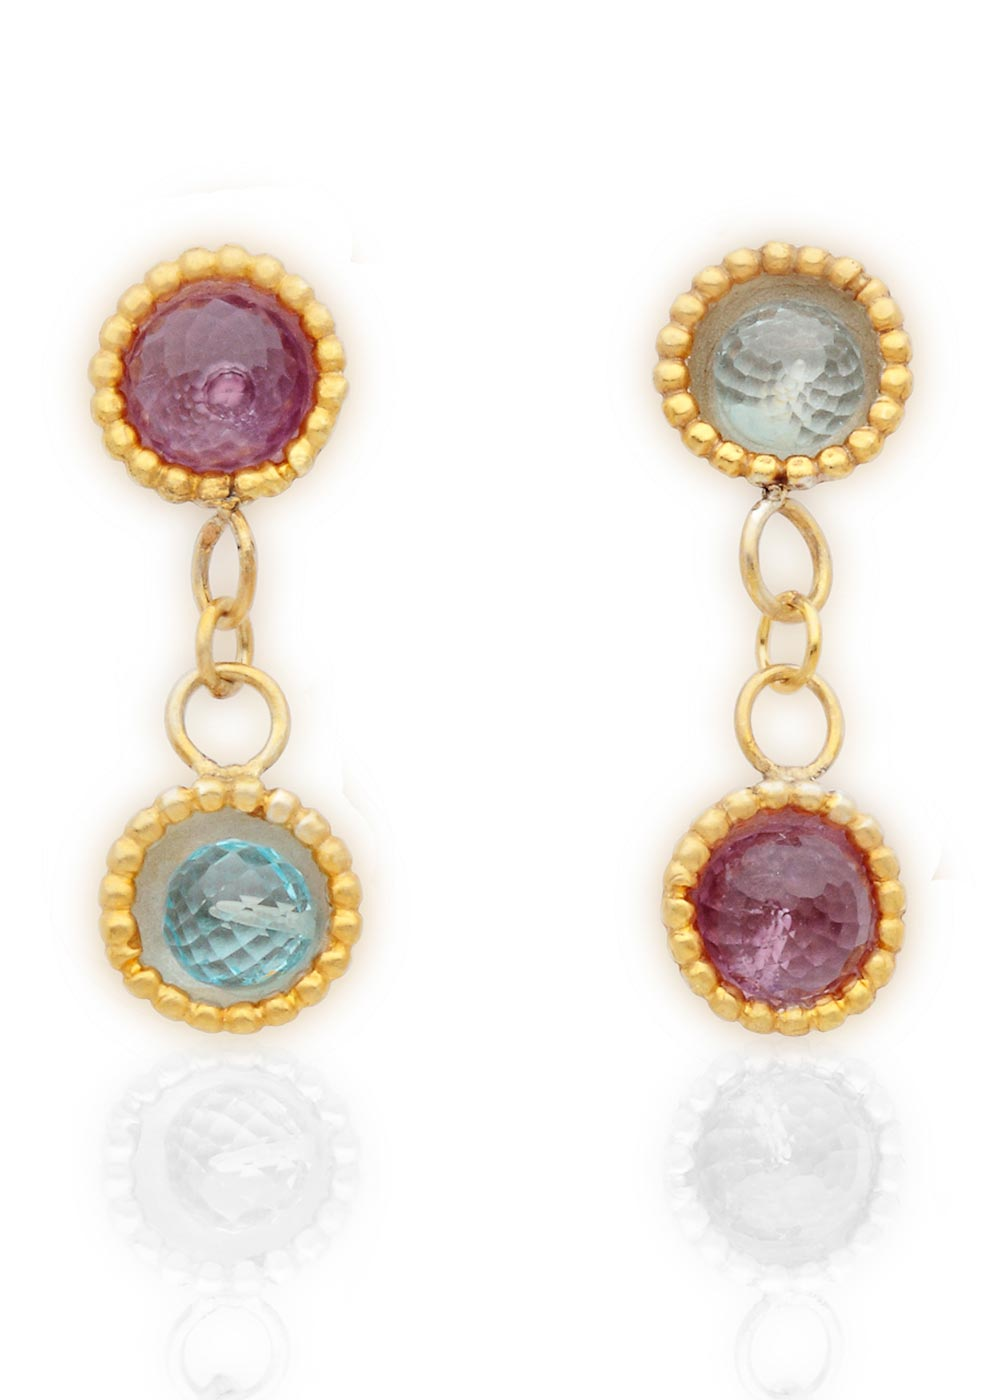 Byzantine 2 drop dome earrings with amethyst & blue topaz